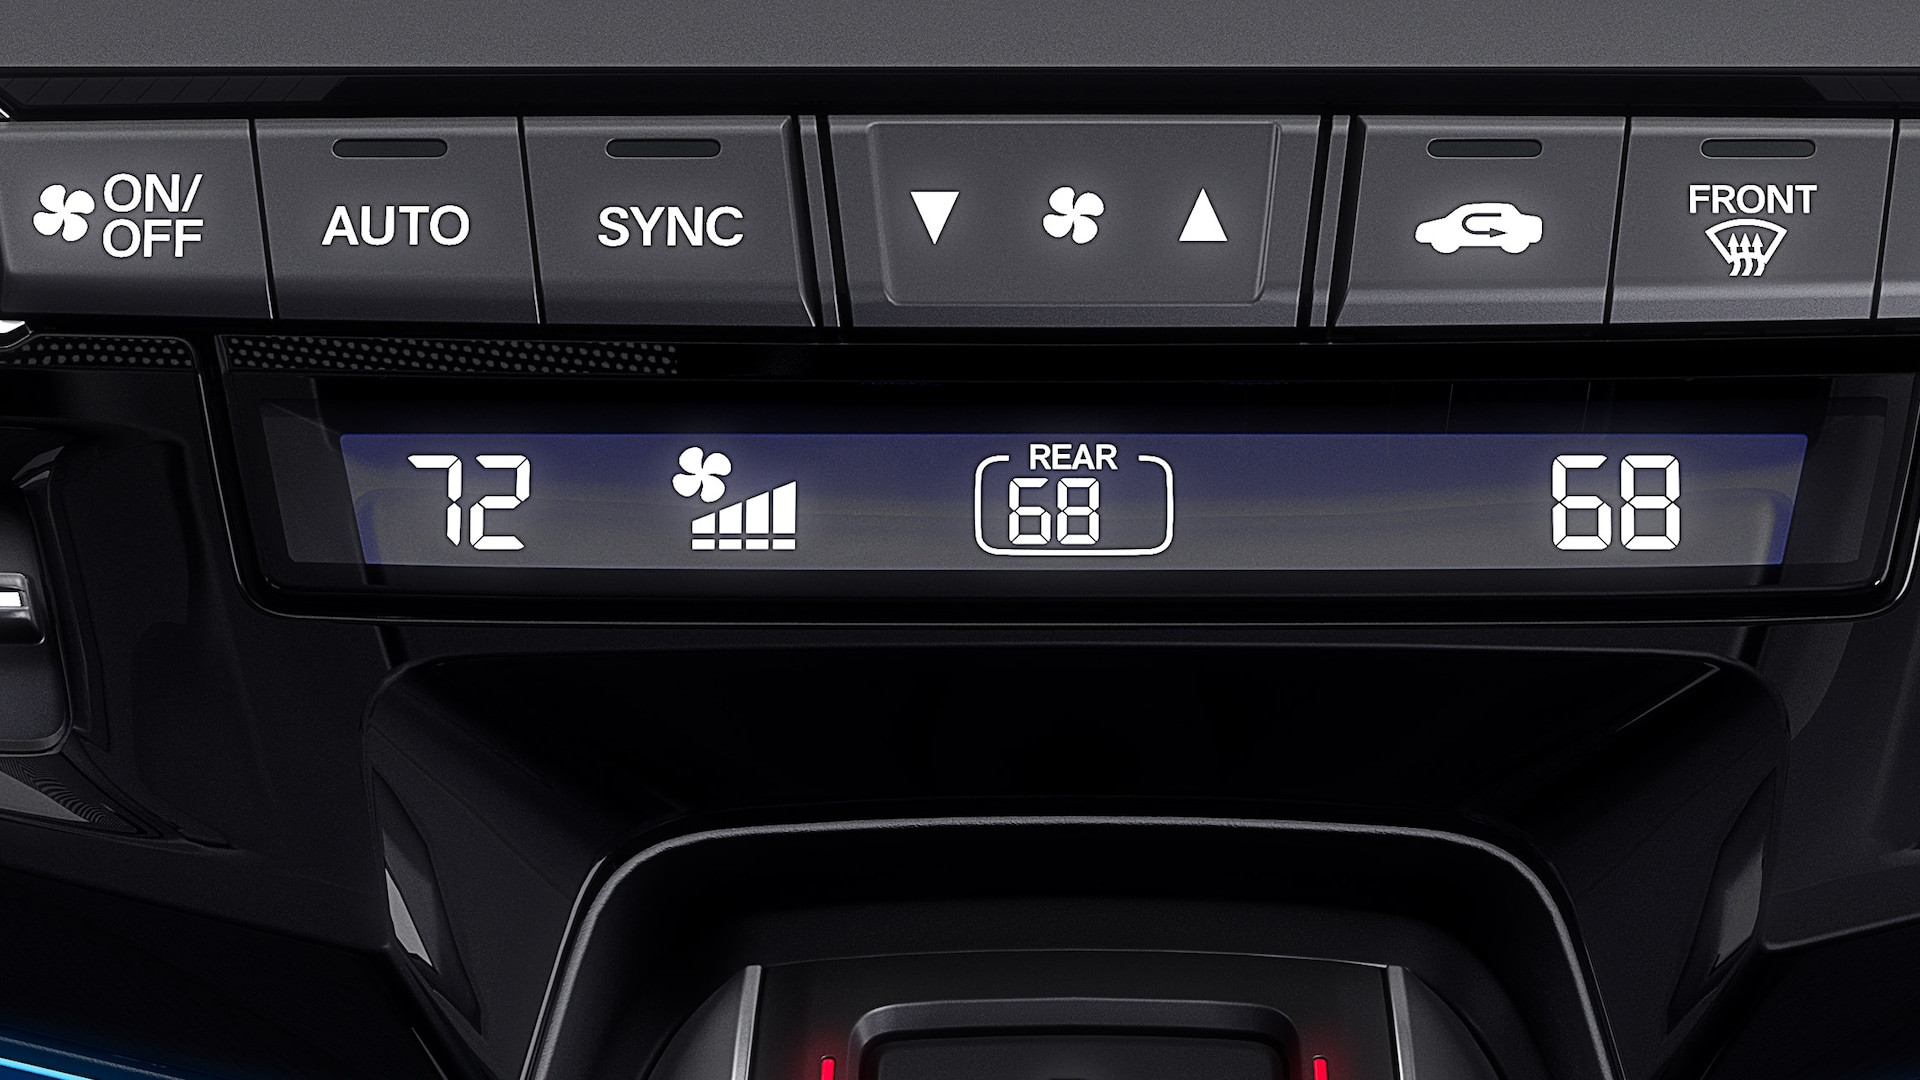 Climate Control in the 2020 Honda Odyssey